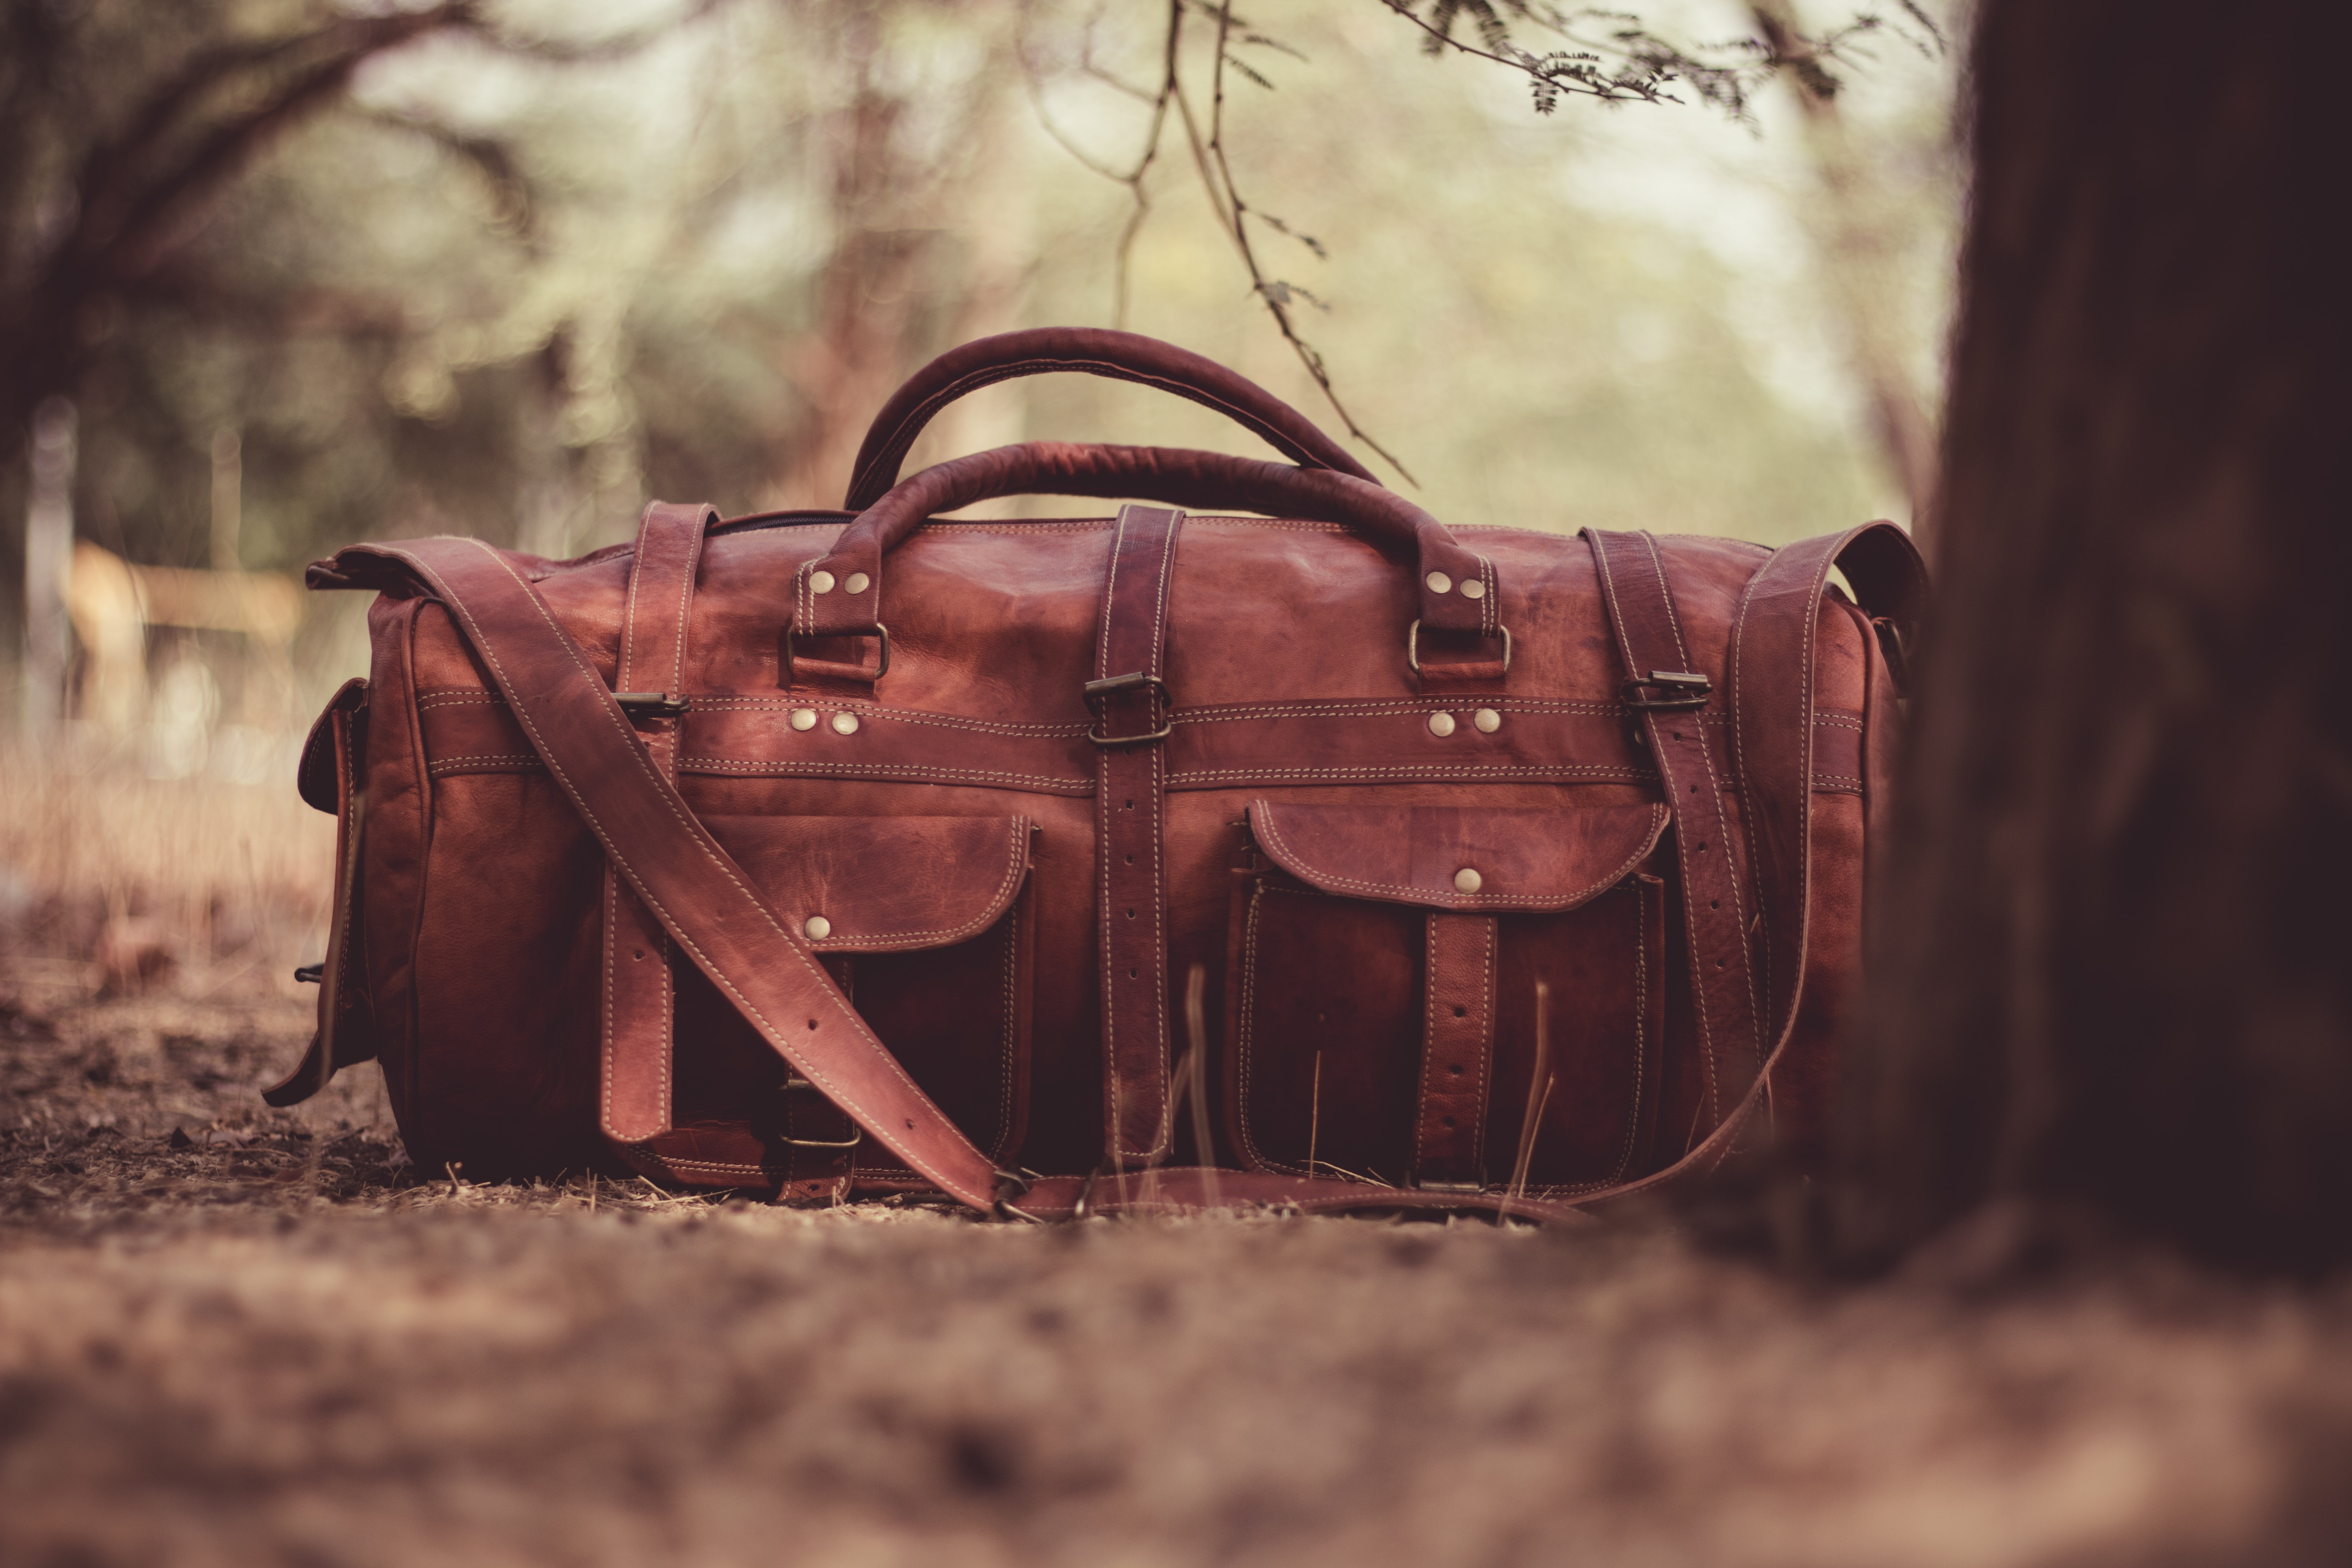 selective focus photography brown leather 2-way handbag near tree